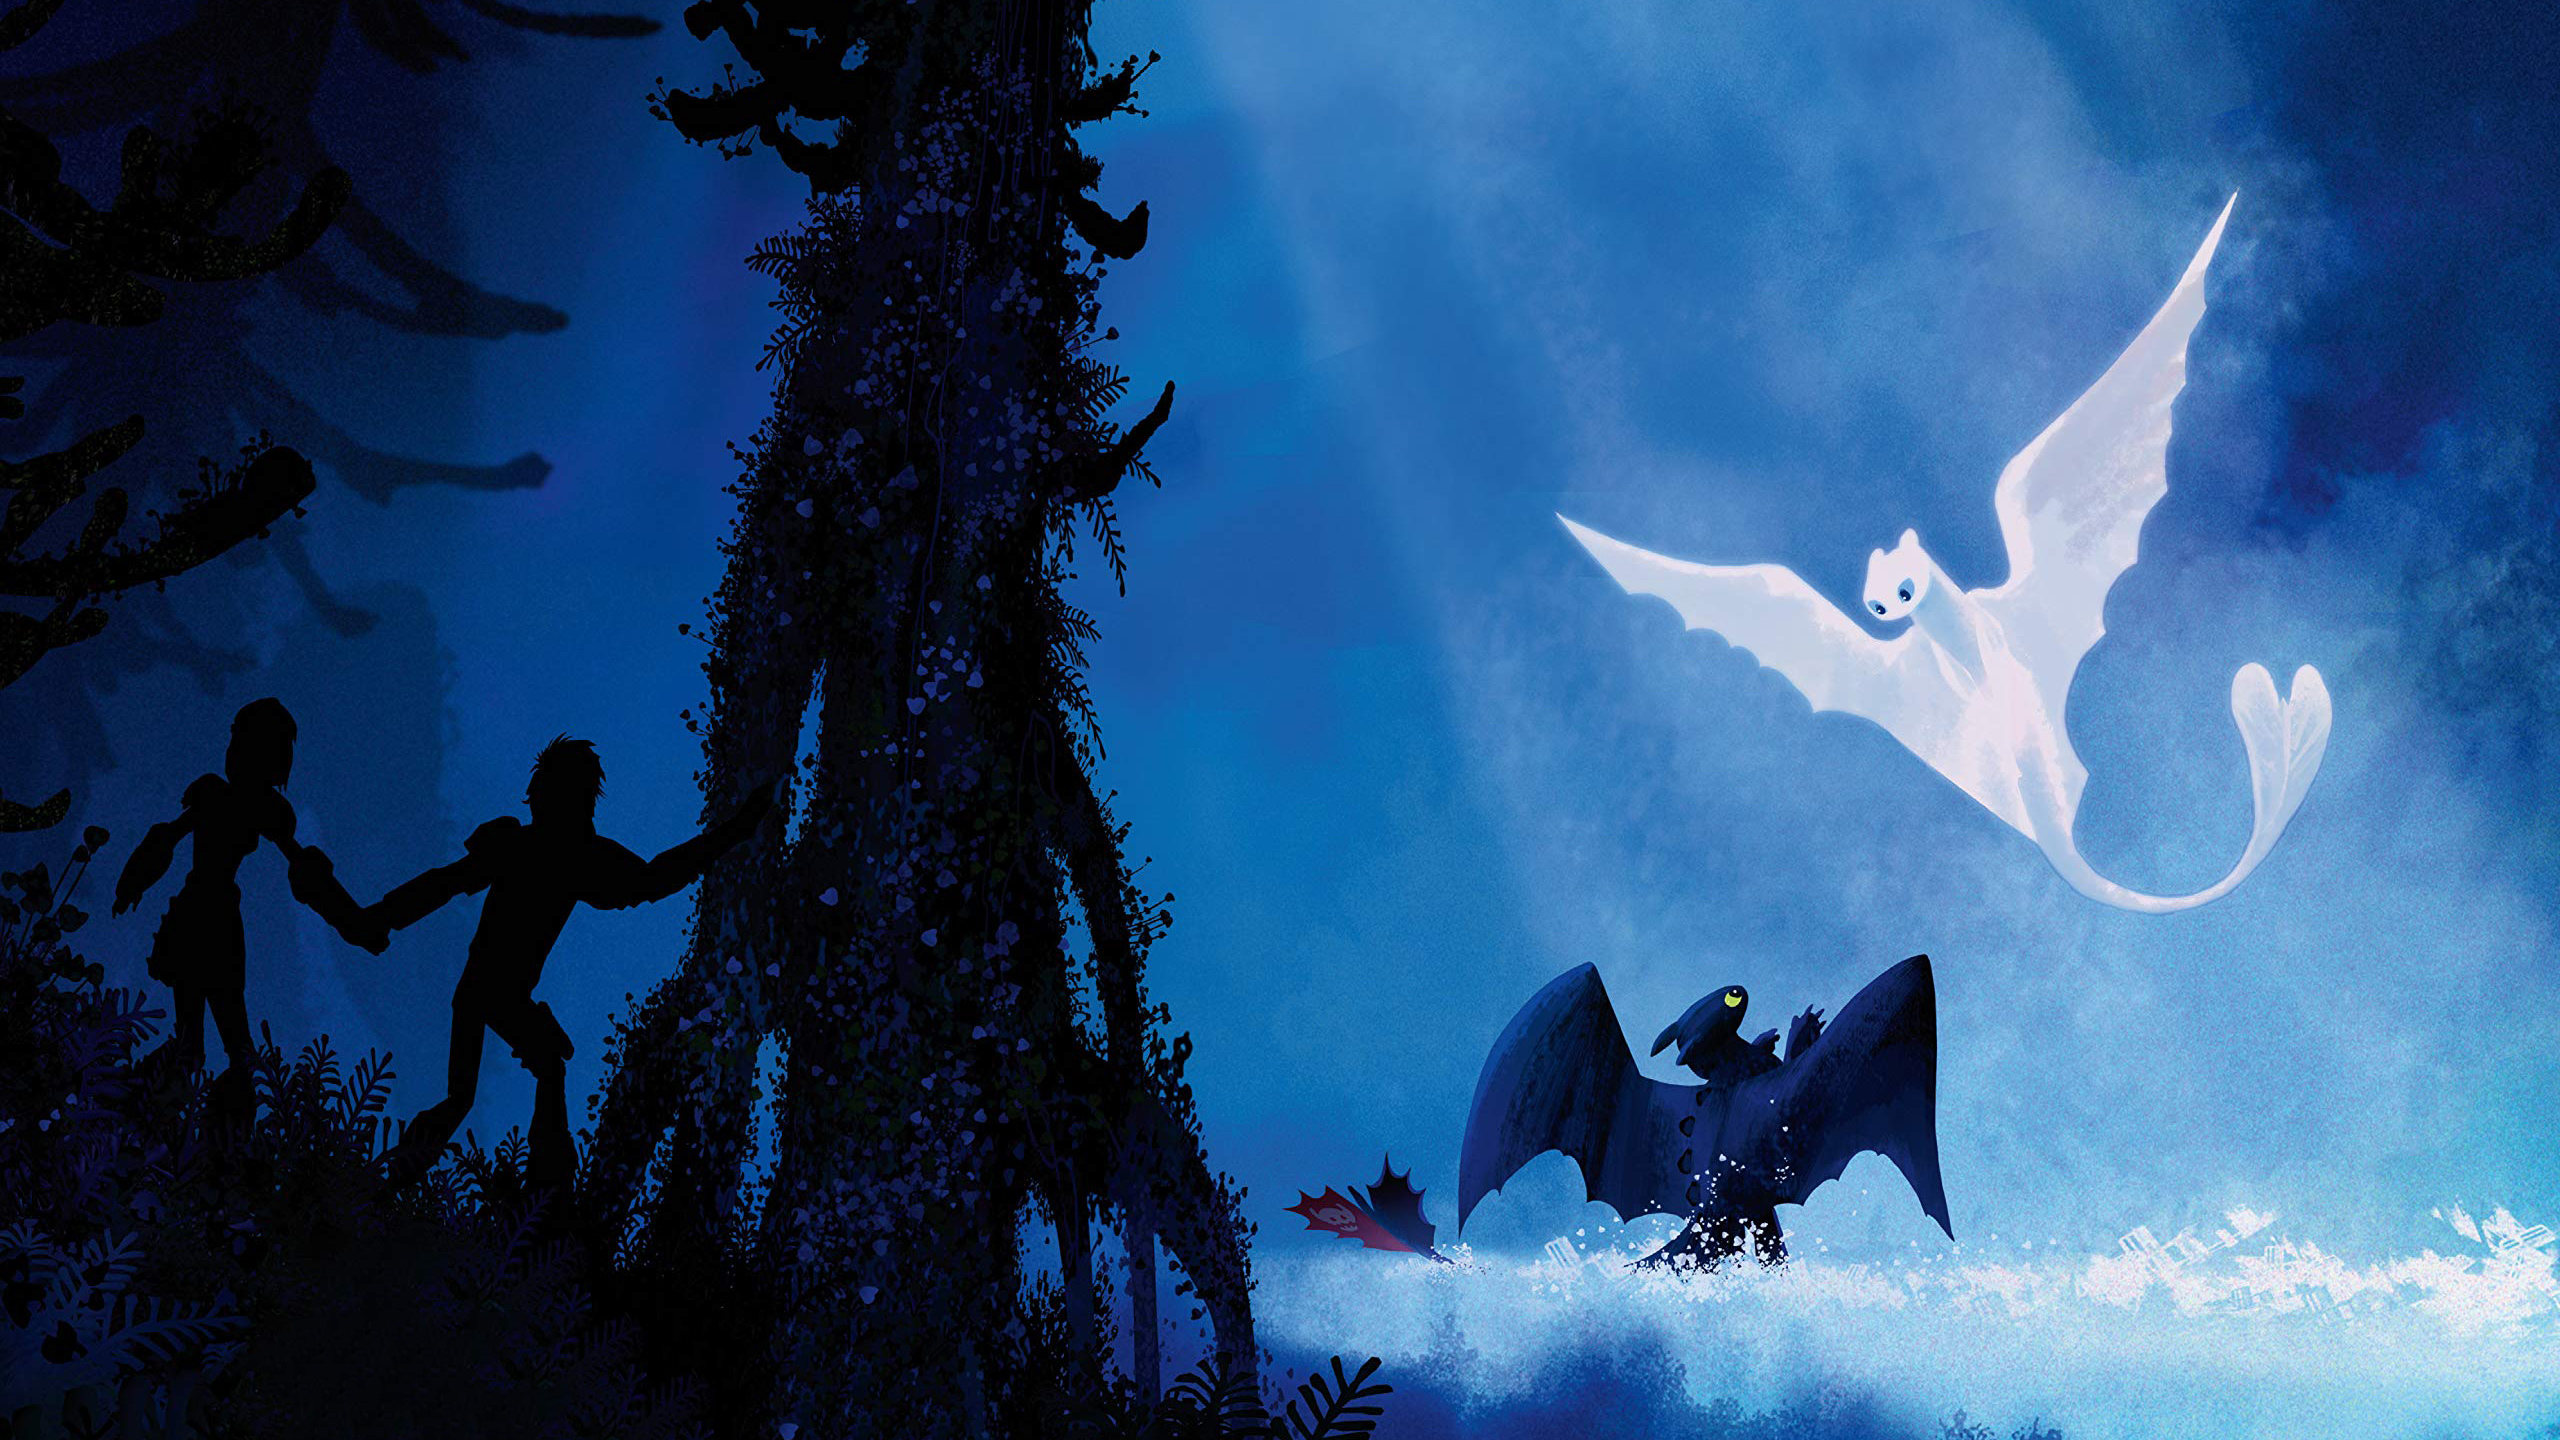 How To Train Your Dragon The Hidden World Poster Hd Movies 4k Wallpapers Images Backgrounds Photos And Pictures